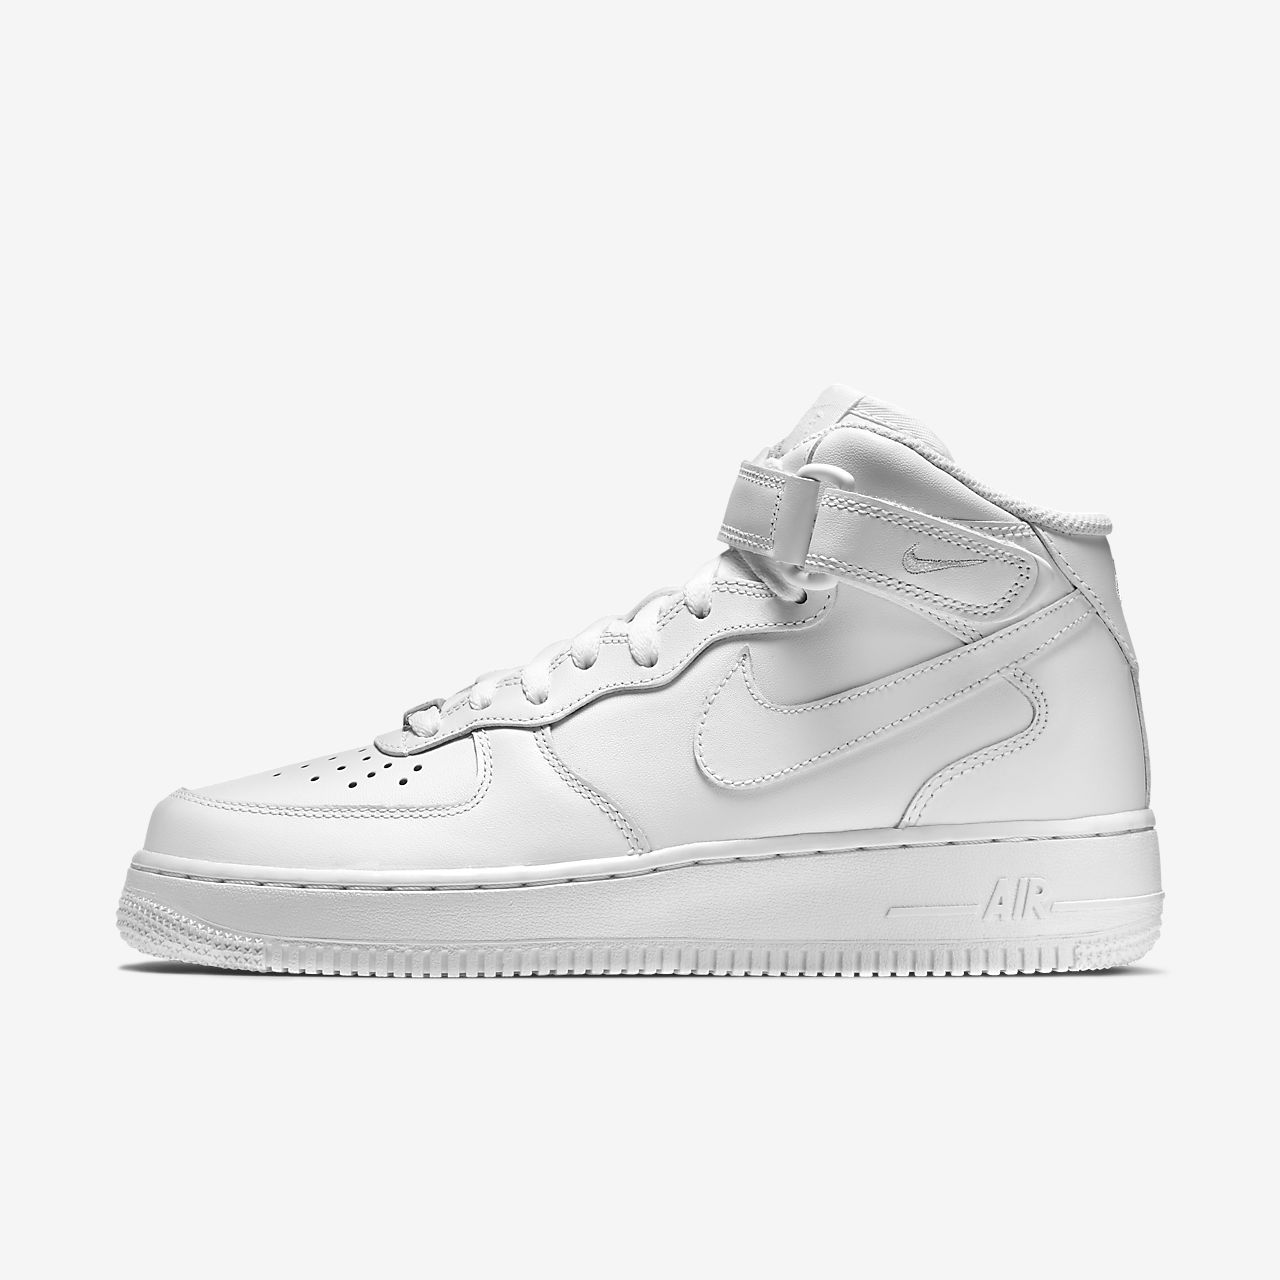 womens white nike air force 1 high tops